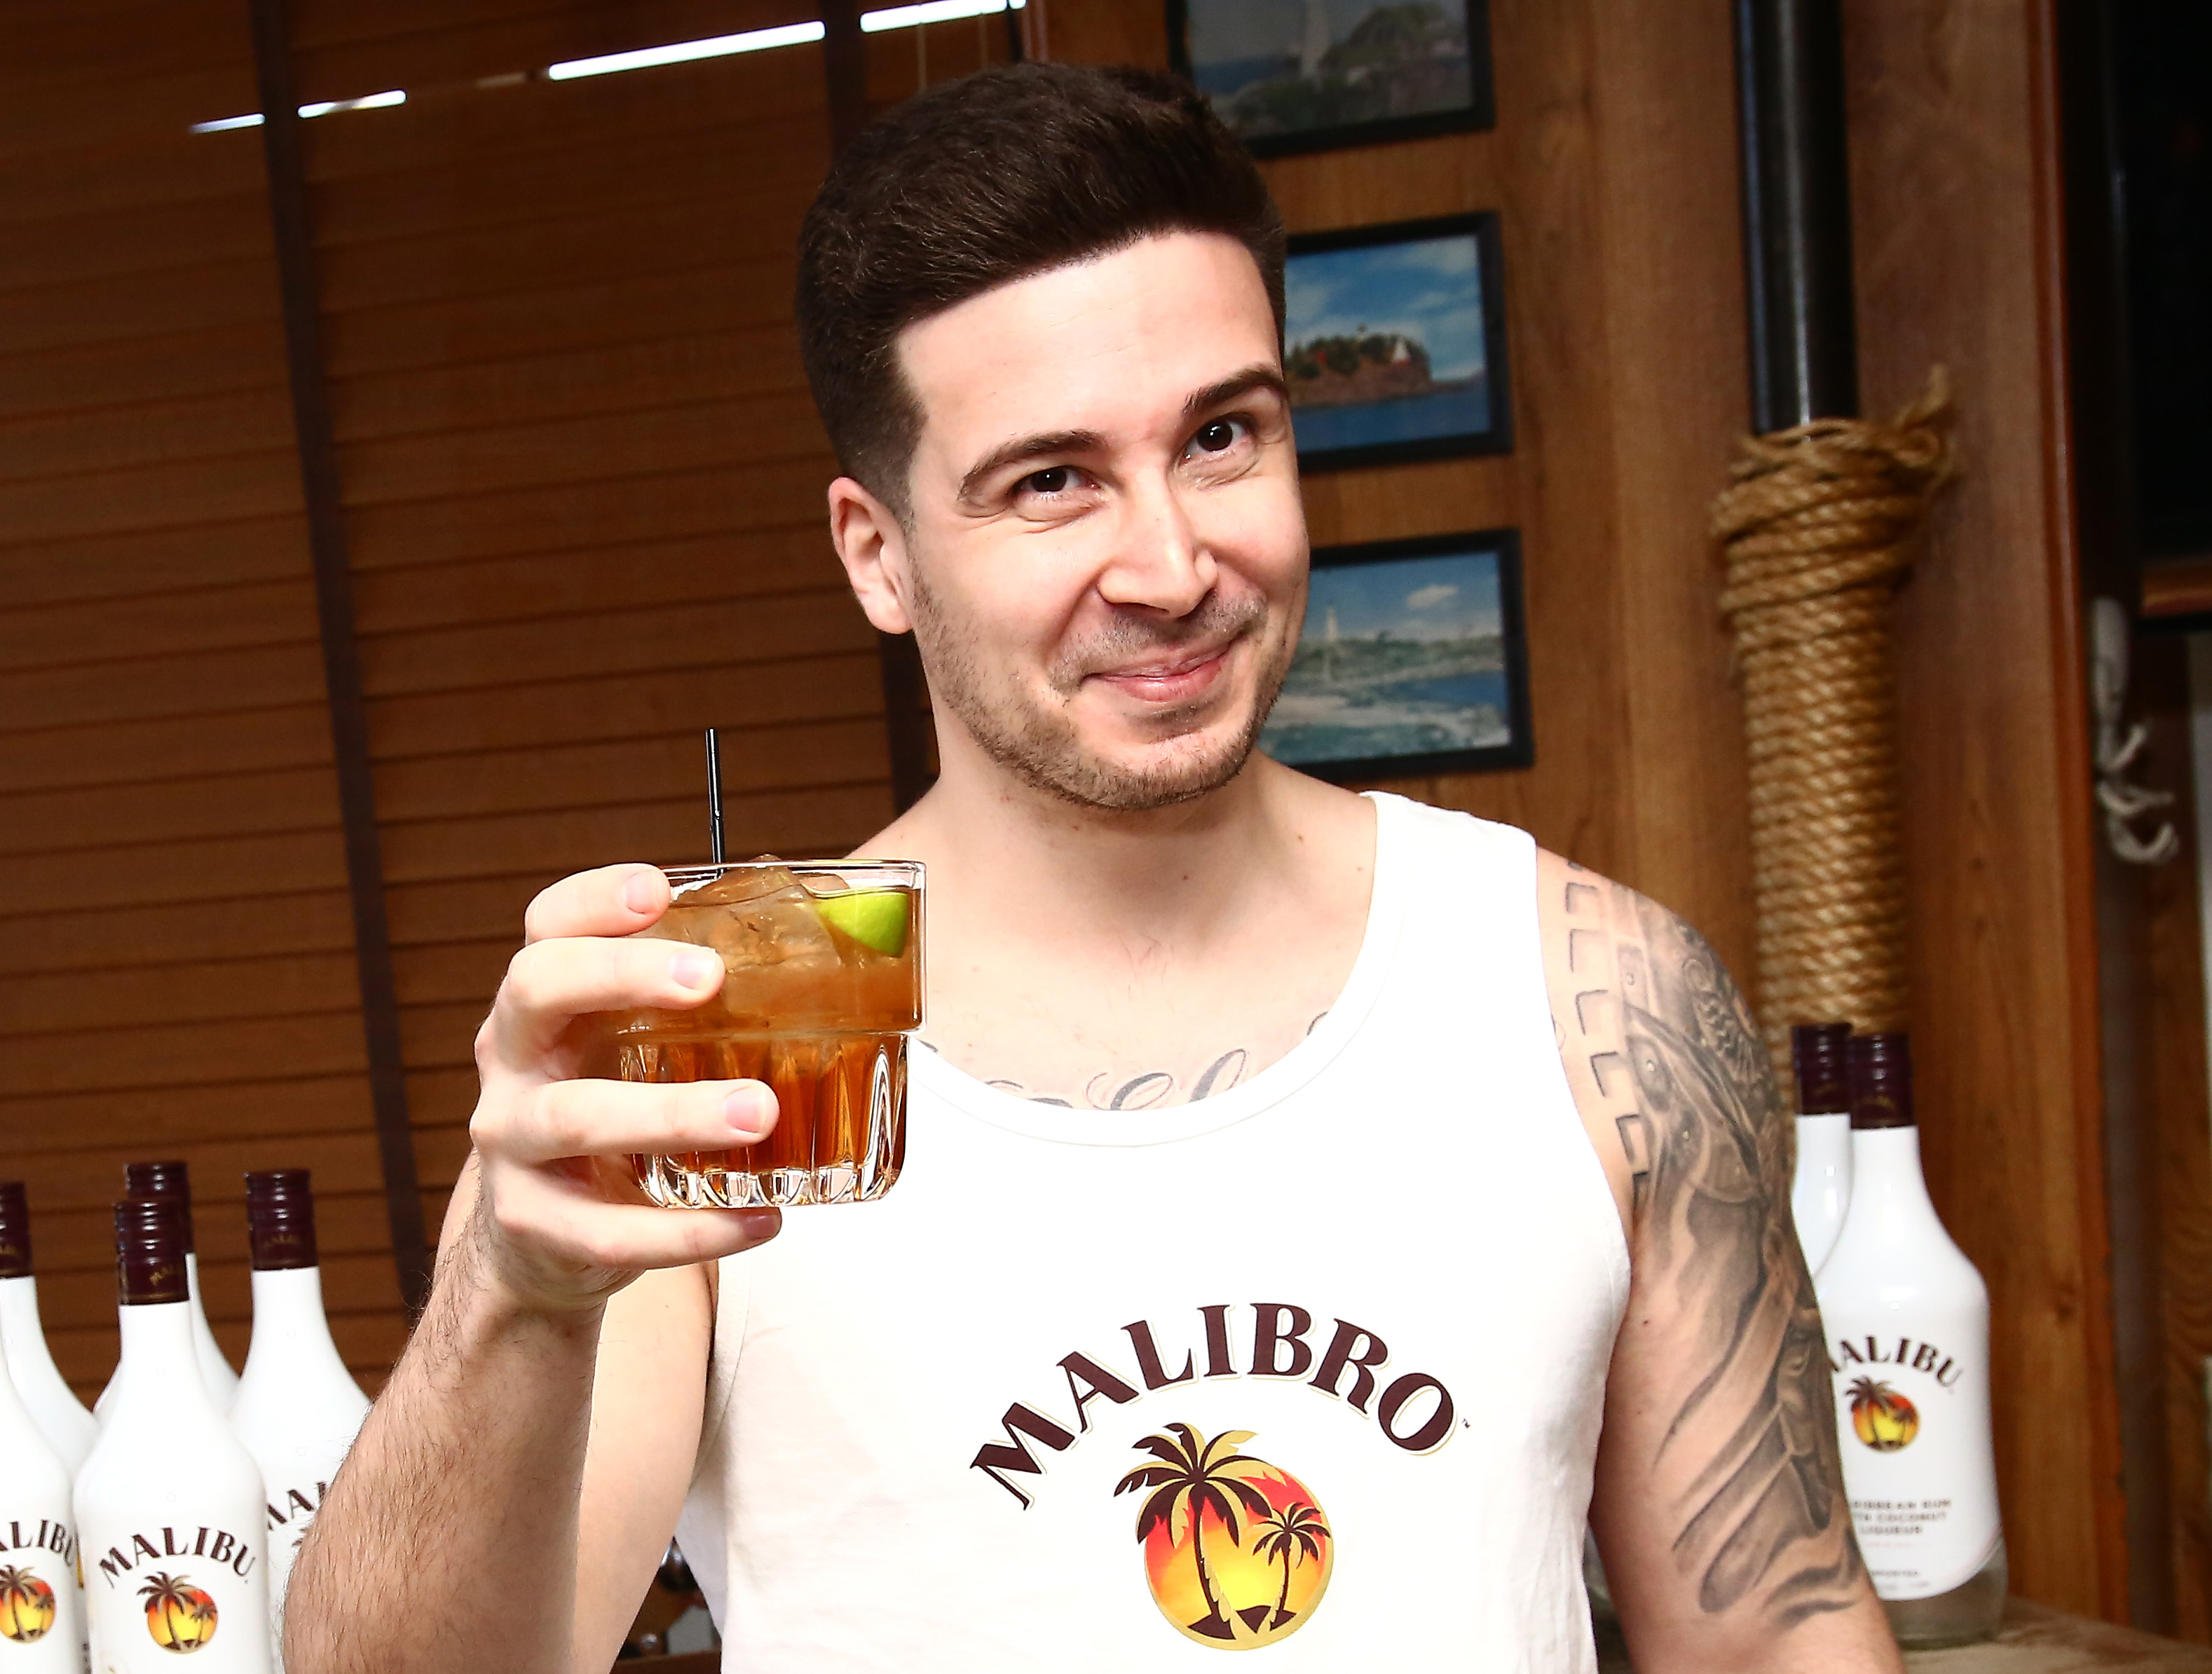 How Jersey Shore's Vinny Is Leading the #Malibro Movement | Fortune